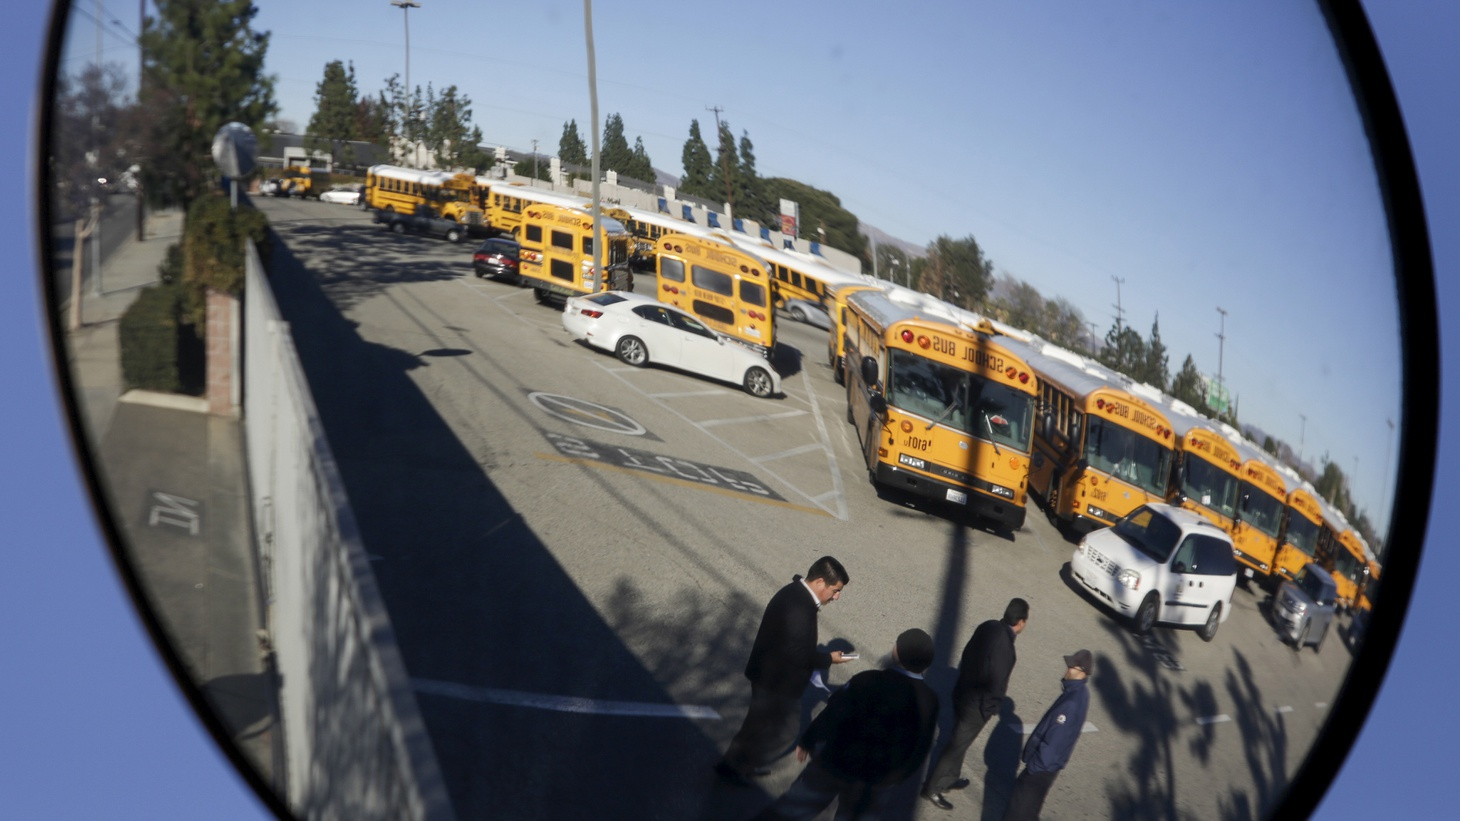 A Los Angeles Unified School District (LAUSD) school bus yard is reflected in a mirror in the North Hills neighborhood of Los Angeles.